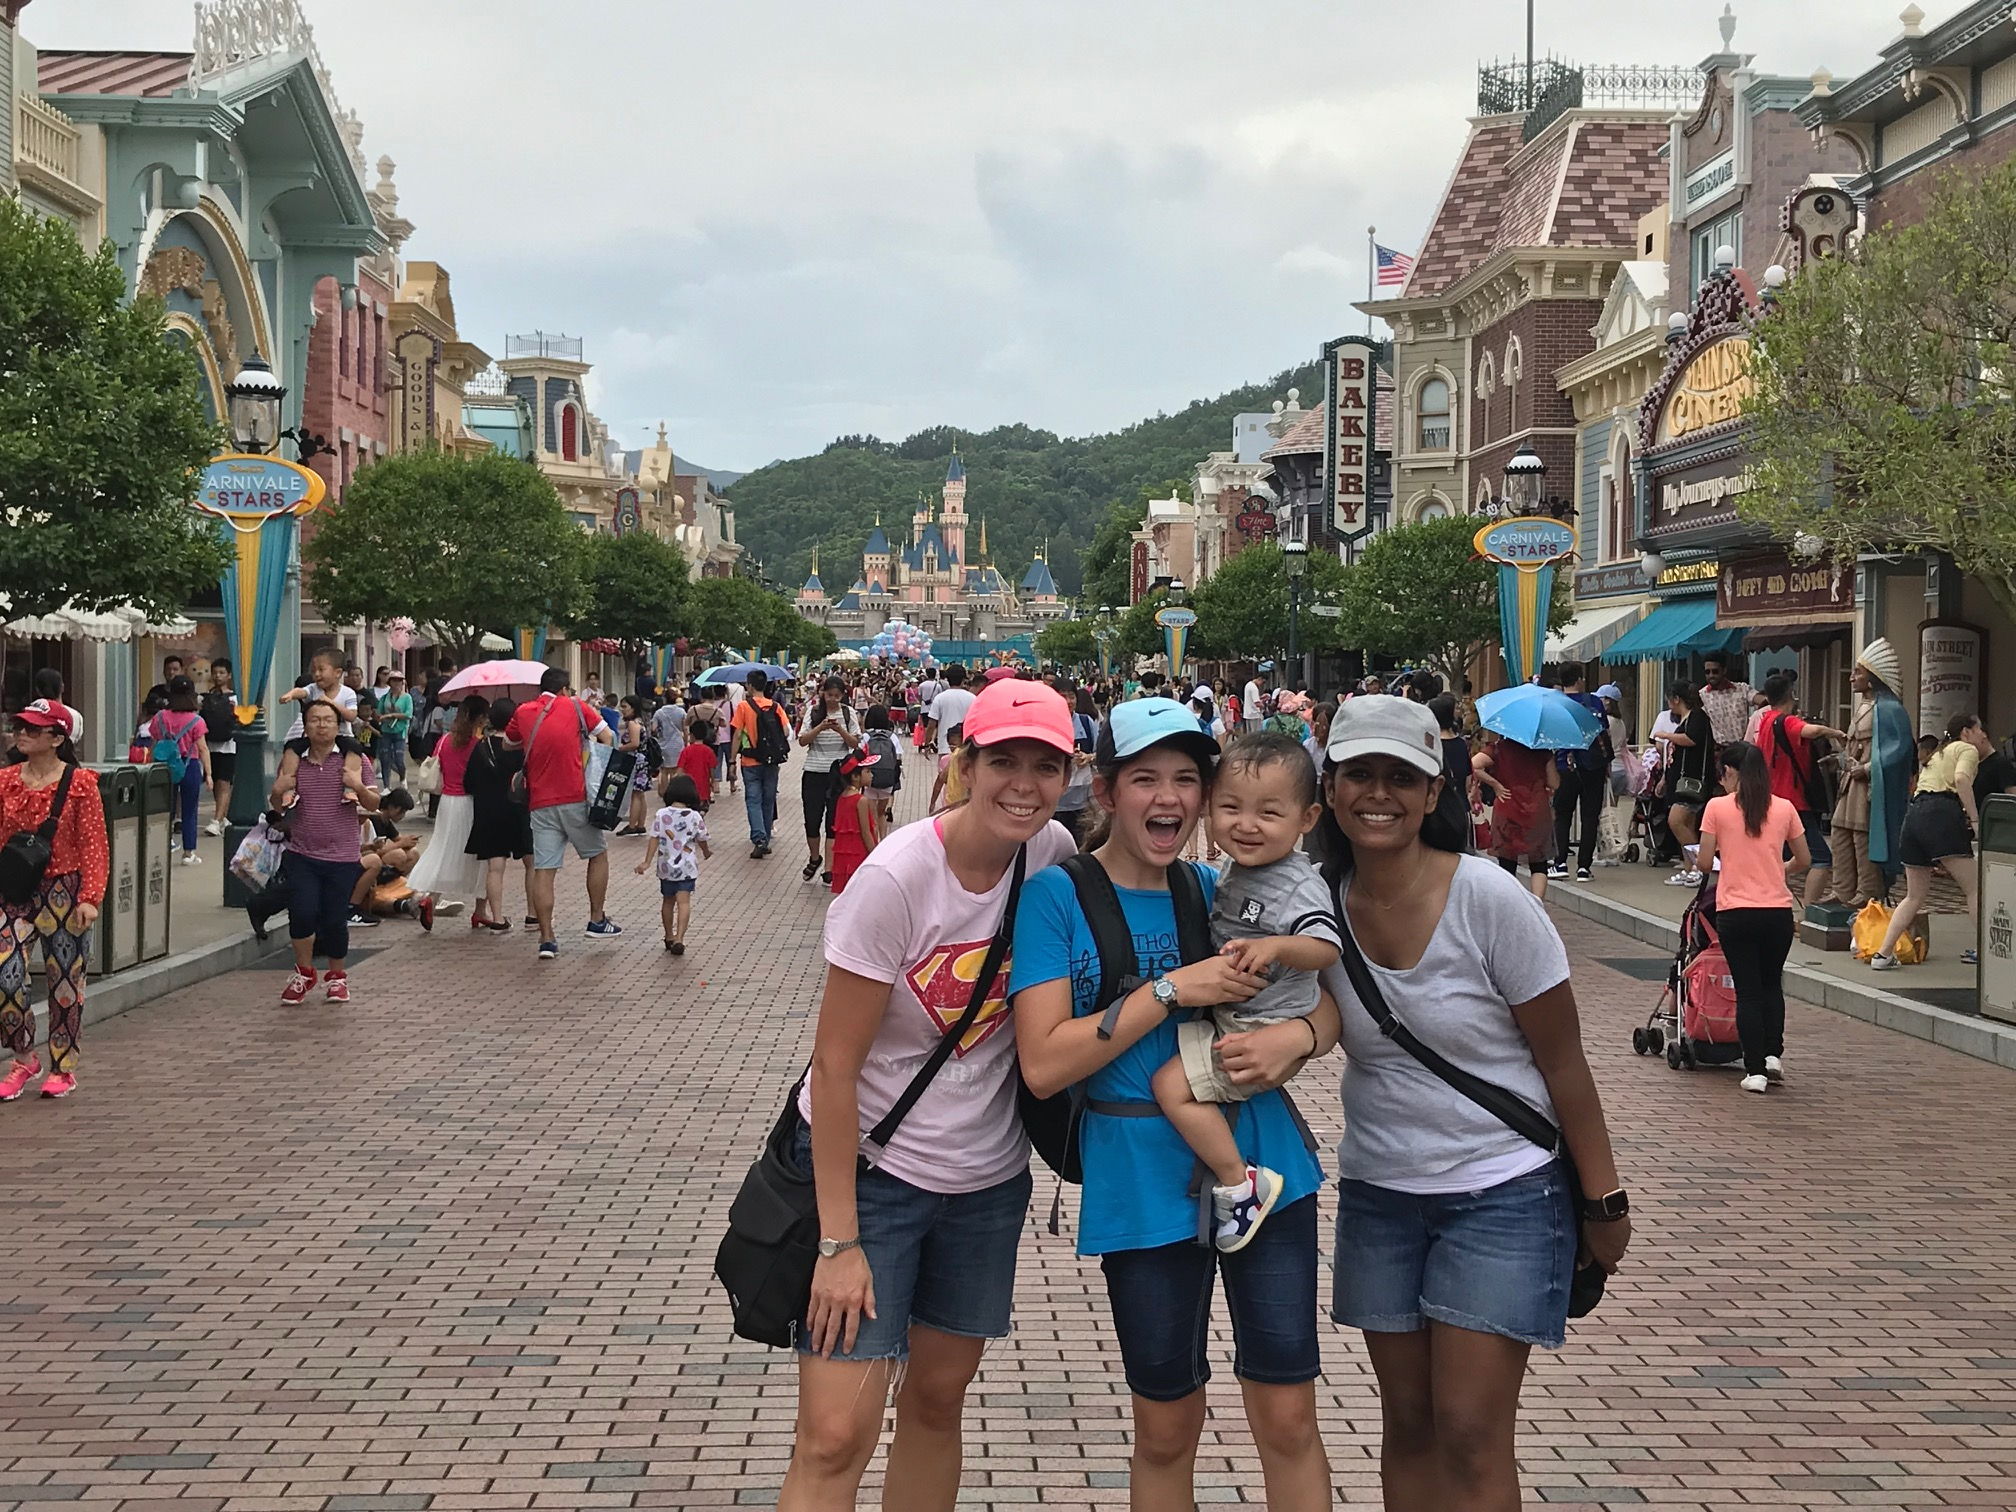 Main Street, USA (they said... if only)